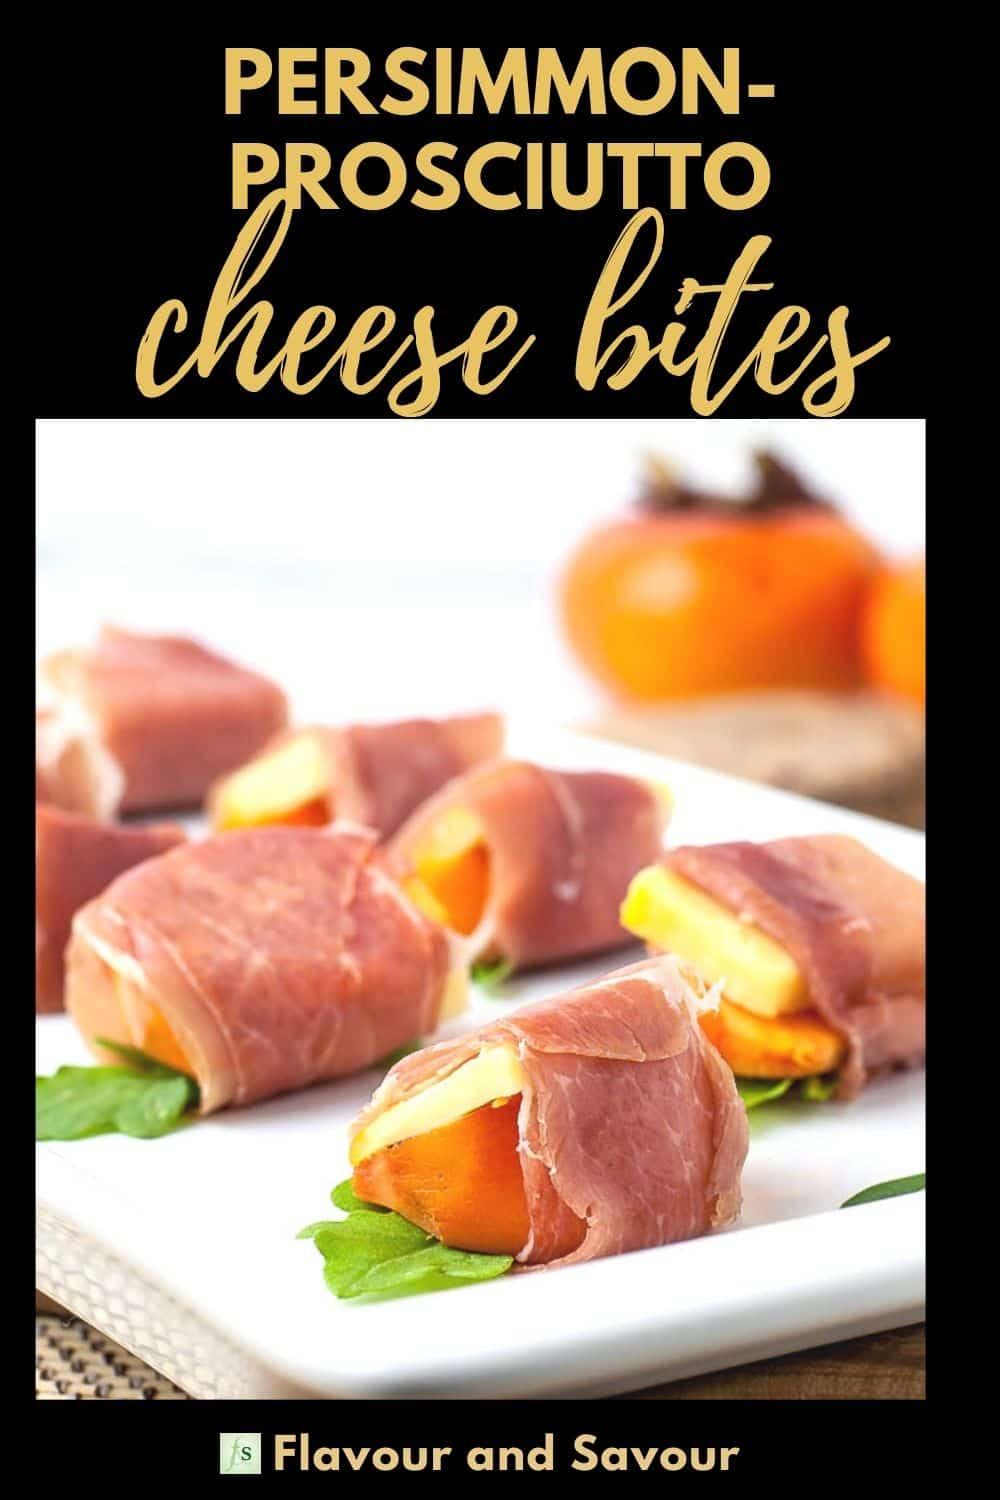 Image and text overlay Persimmon Prosciutto Cheese Bites